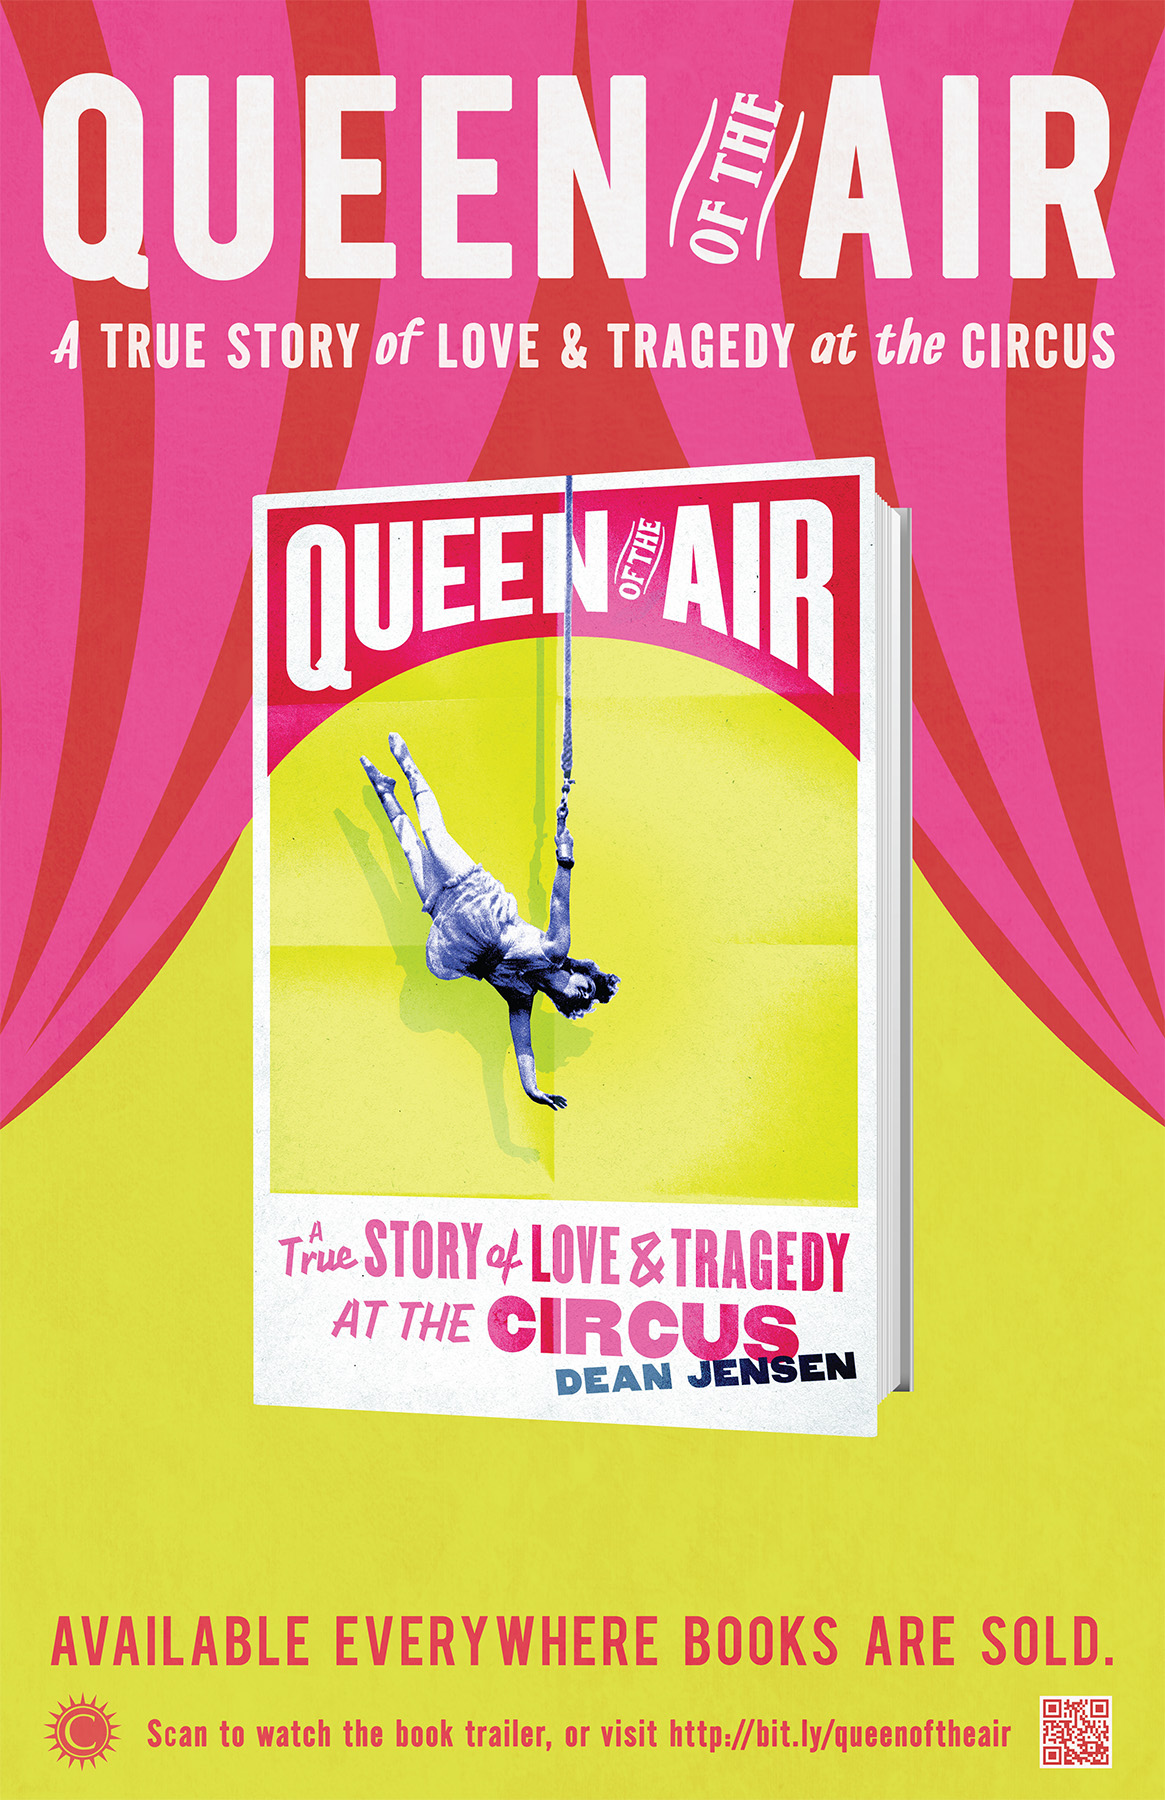 Queen of the Air Poster for Random House